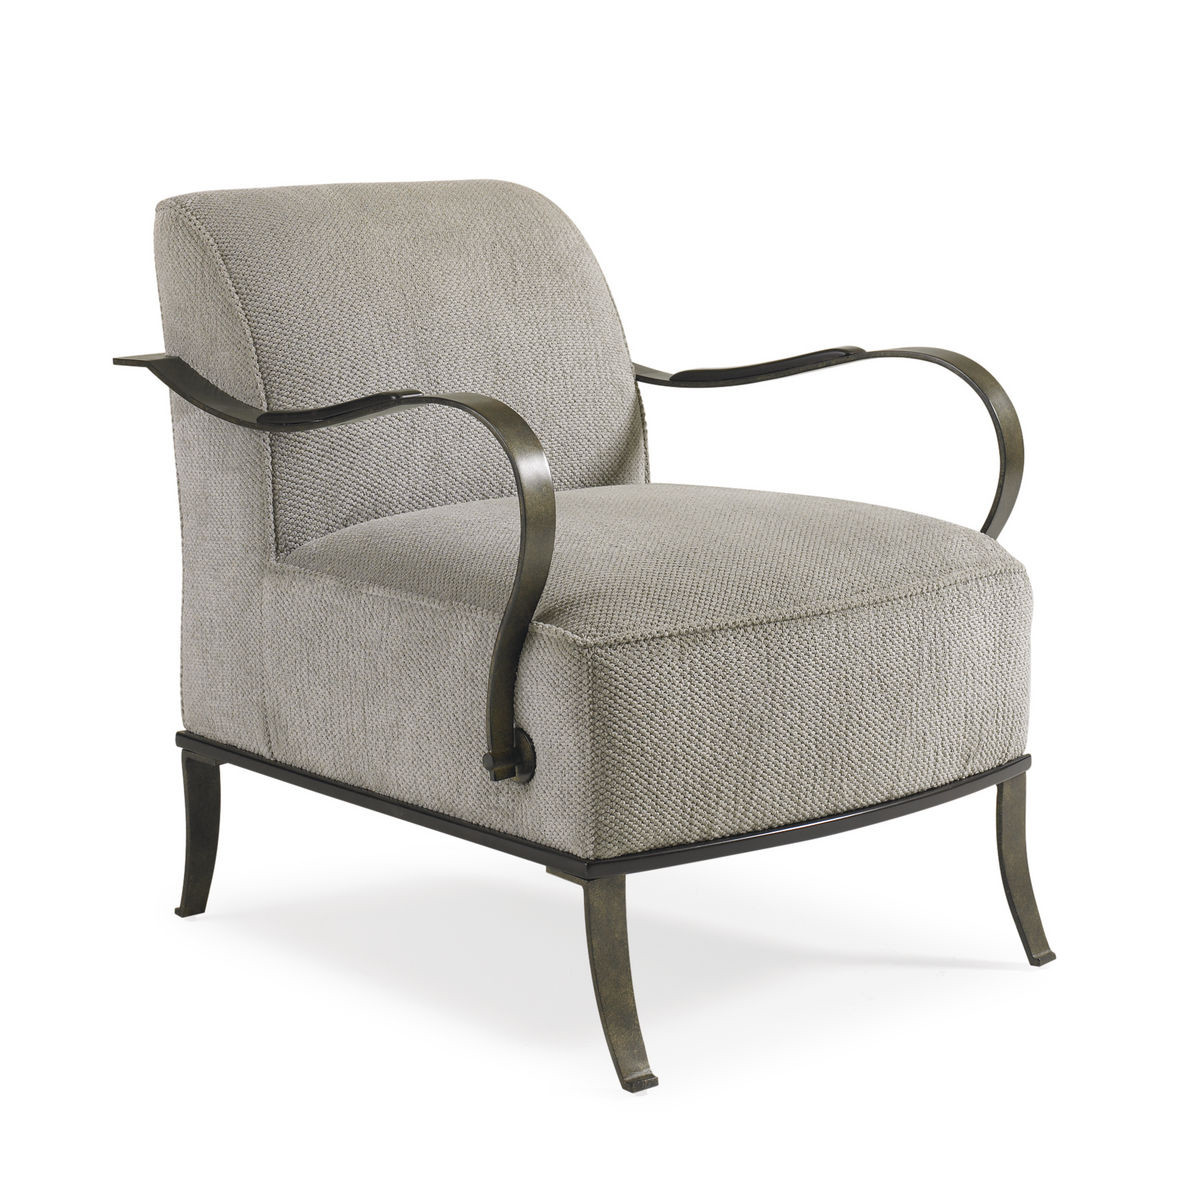 Occasional Swivel Chairs | Mid Century Modern Chairs | Occasional Chairs